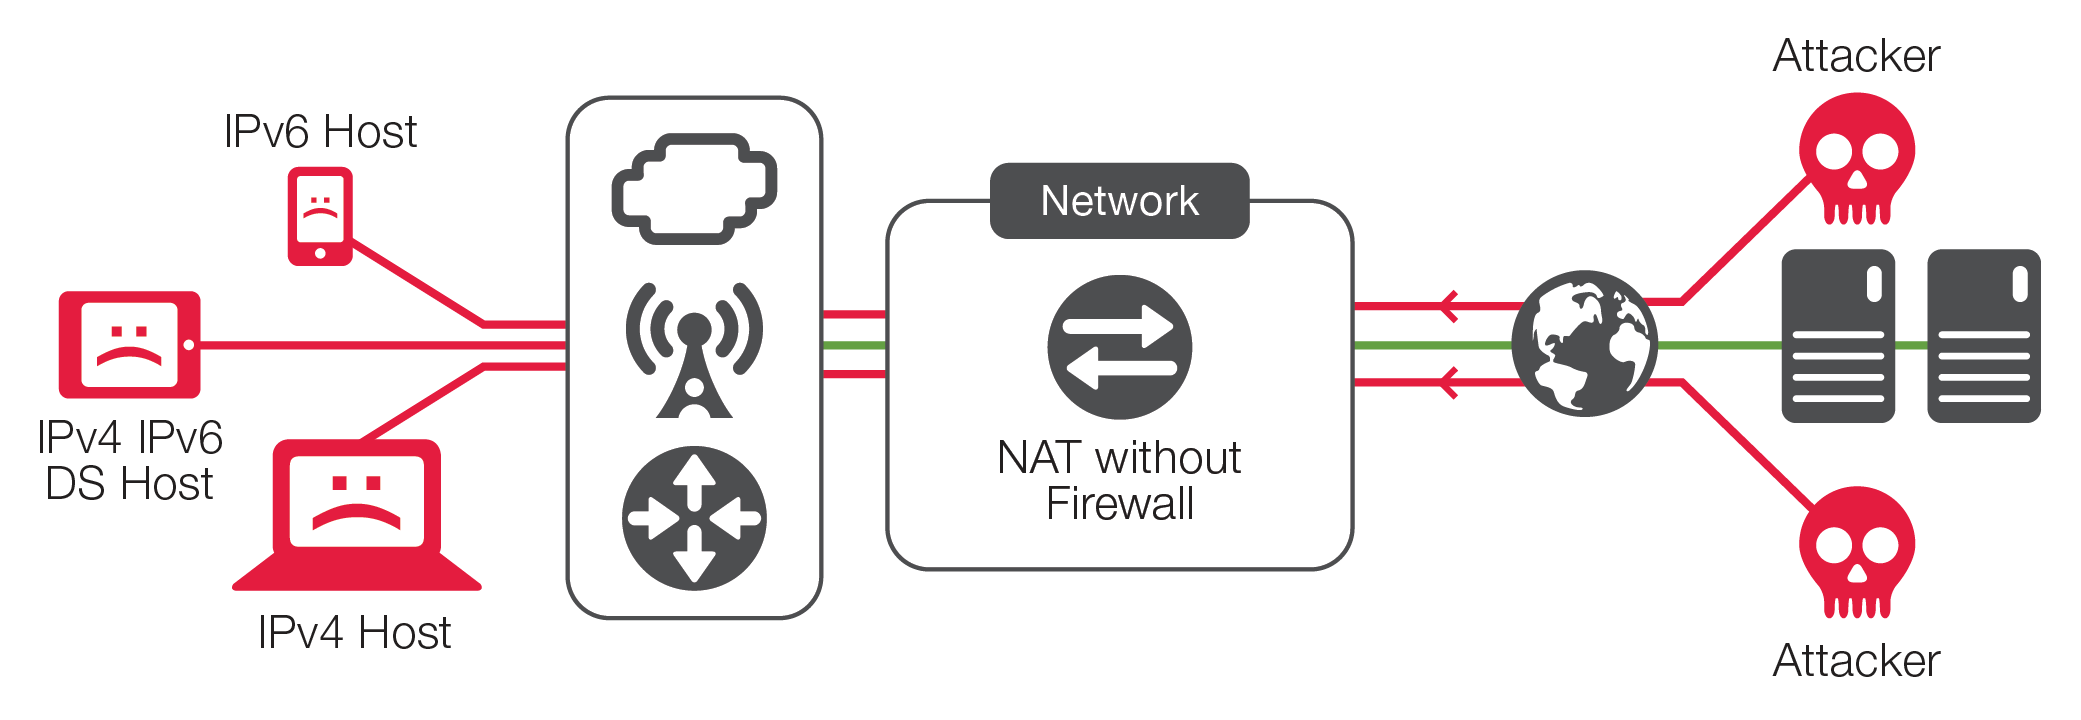 The Myth of Network Address Translation as Security